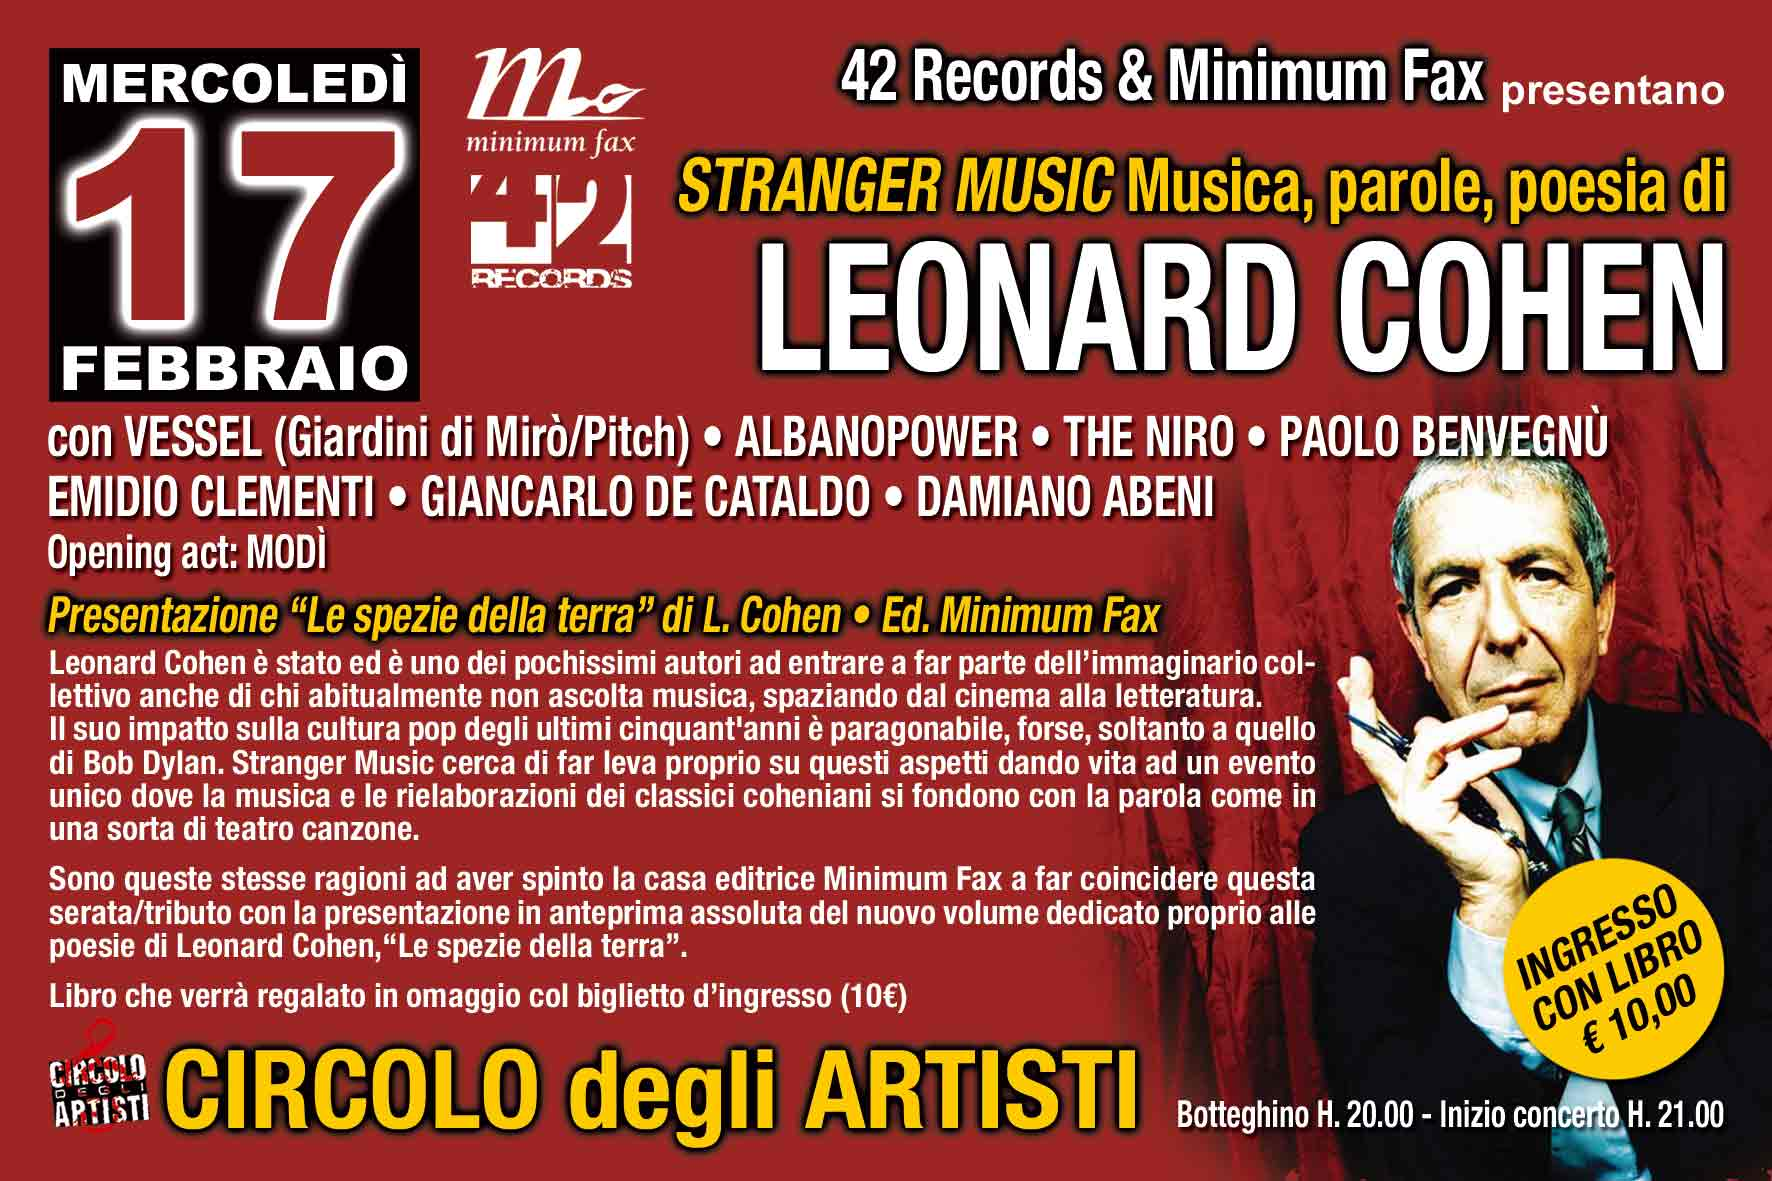 Leonard Cohen Libros Stranger Music An Open Source Tribute To The Music And